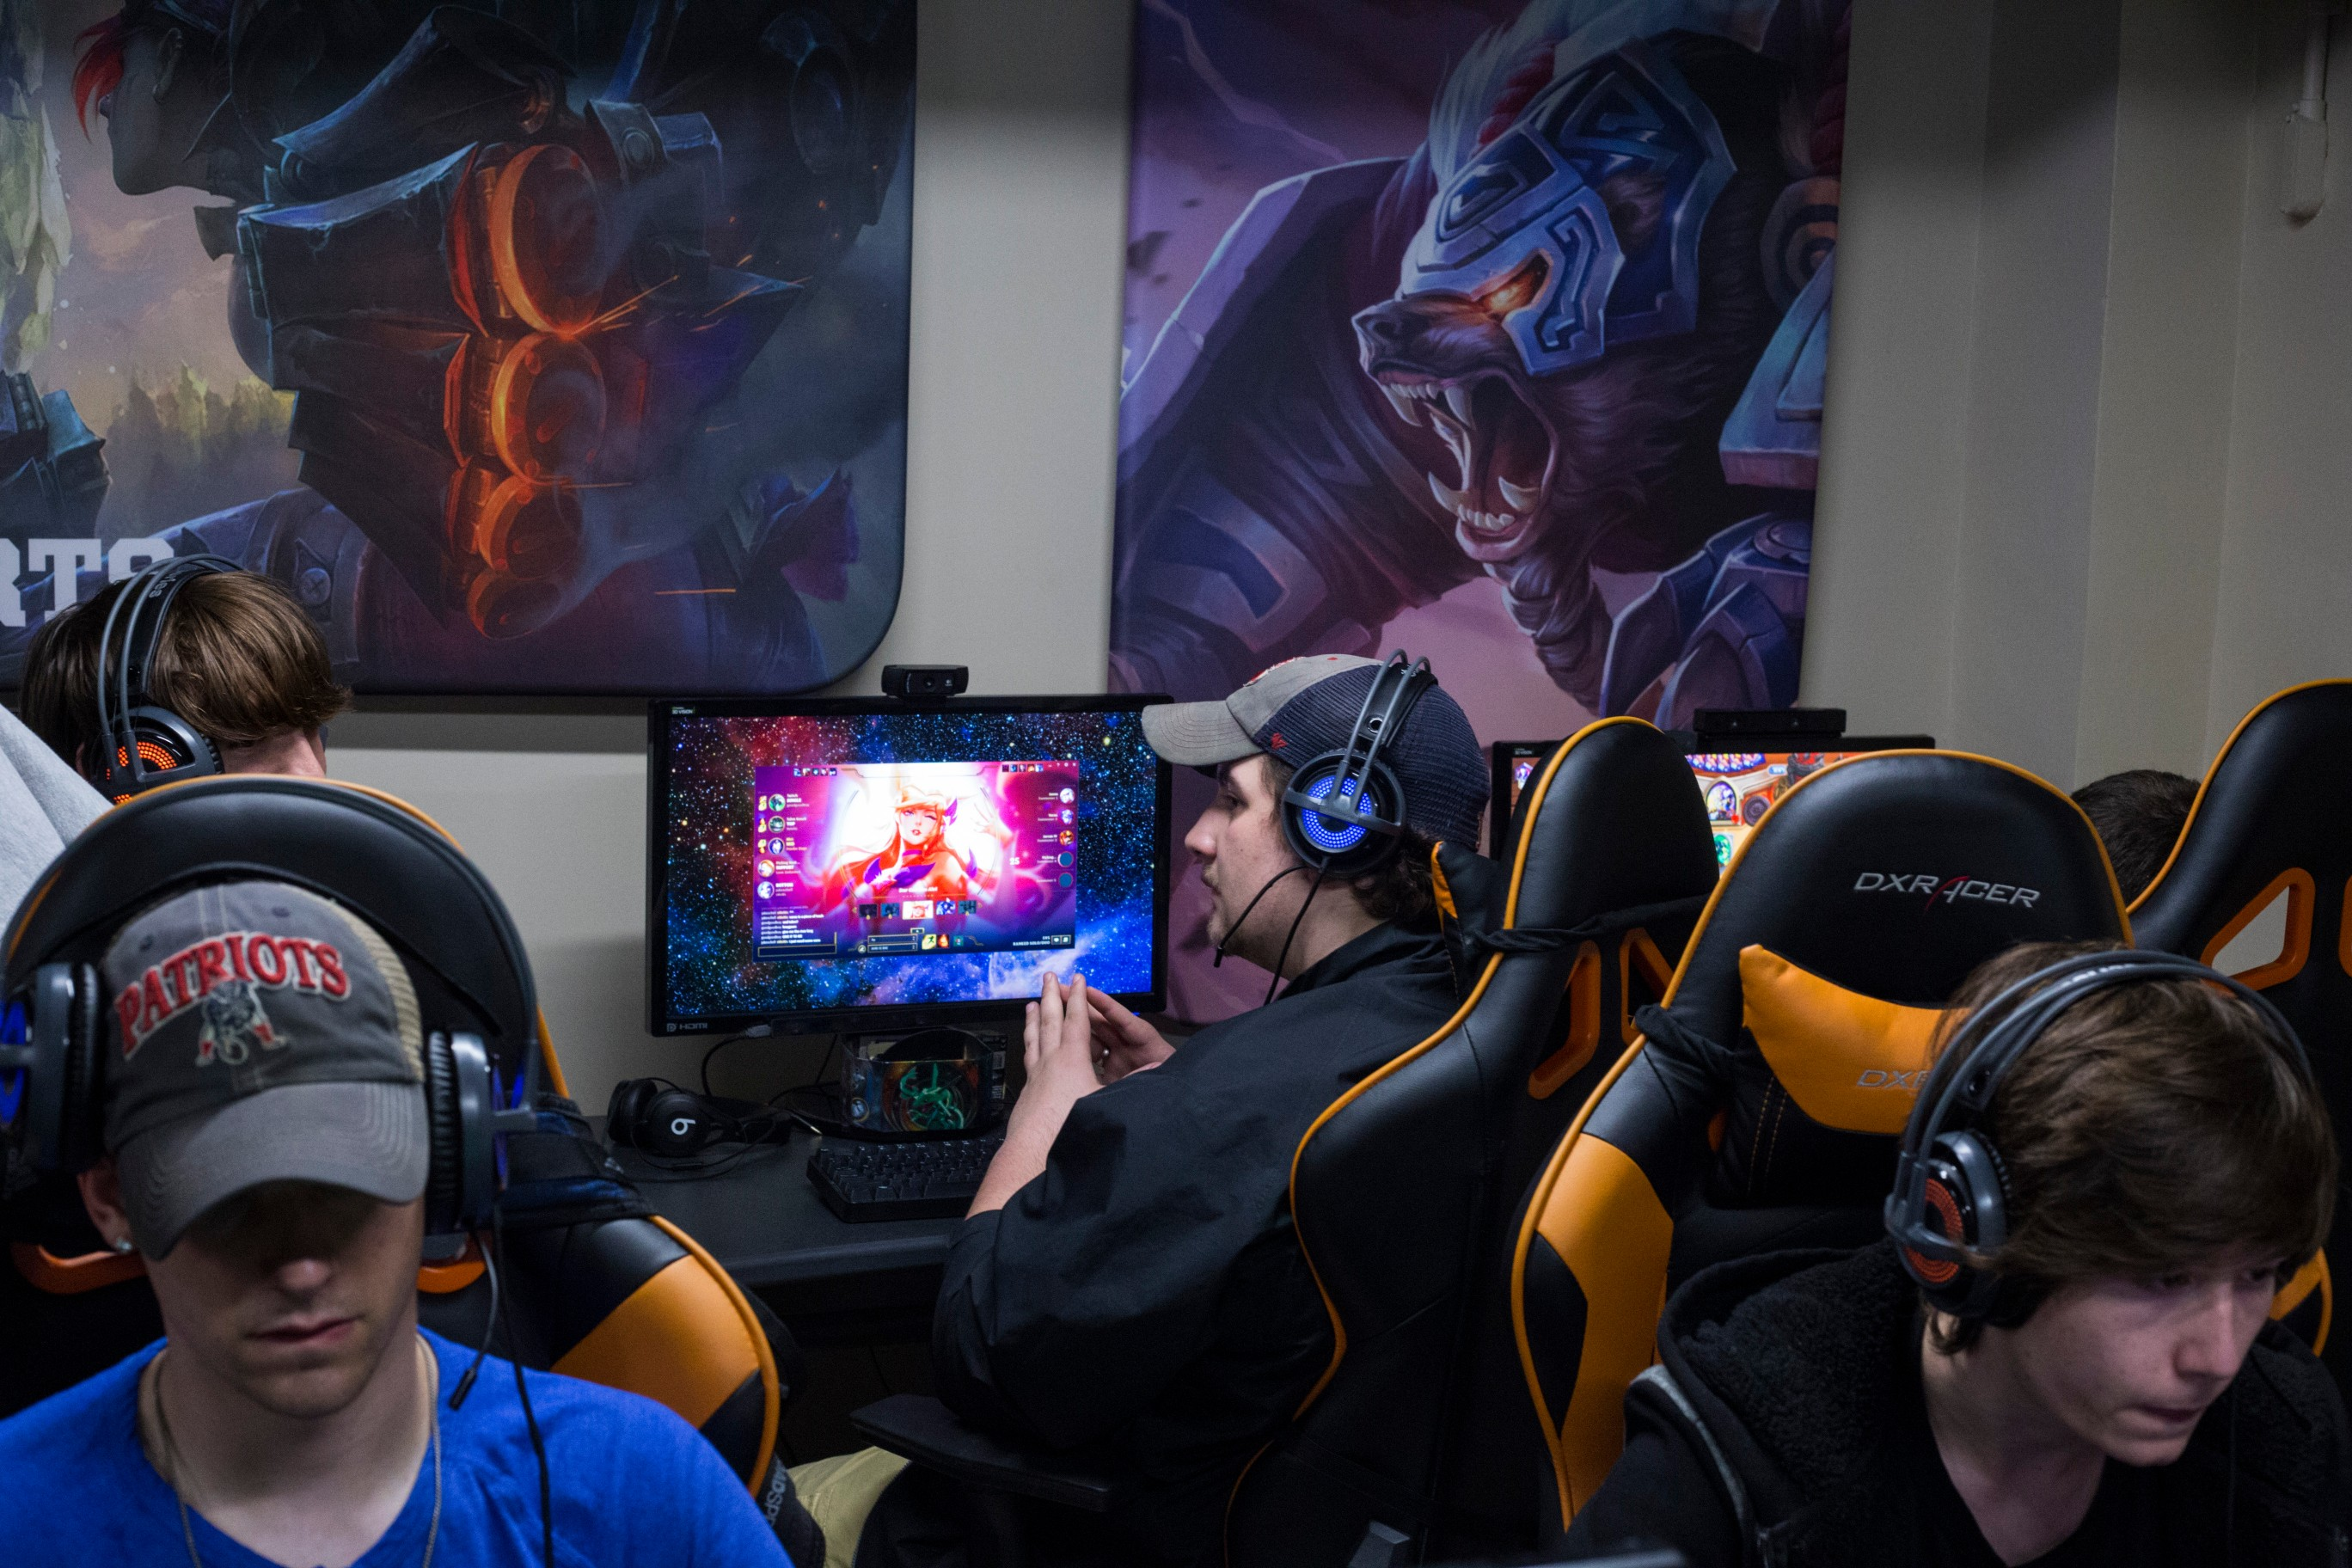 Pro-gamers spend their evening tactfully planning their next moves at the University of Pikeville's ESports Arena in Pikeville, Ky., on Thursday, September 21, 2017. The University has offered scholarships to the students, who are classified as student athletes on campus. (Photo by Brittany Greeson/GroundTruth)